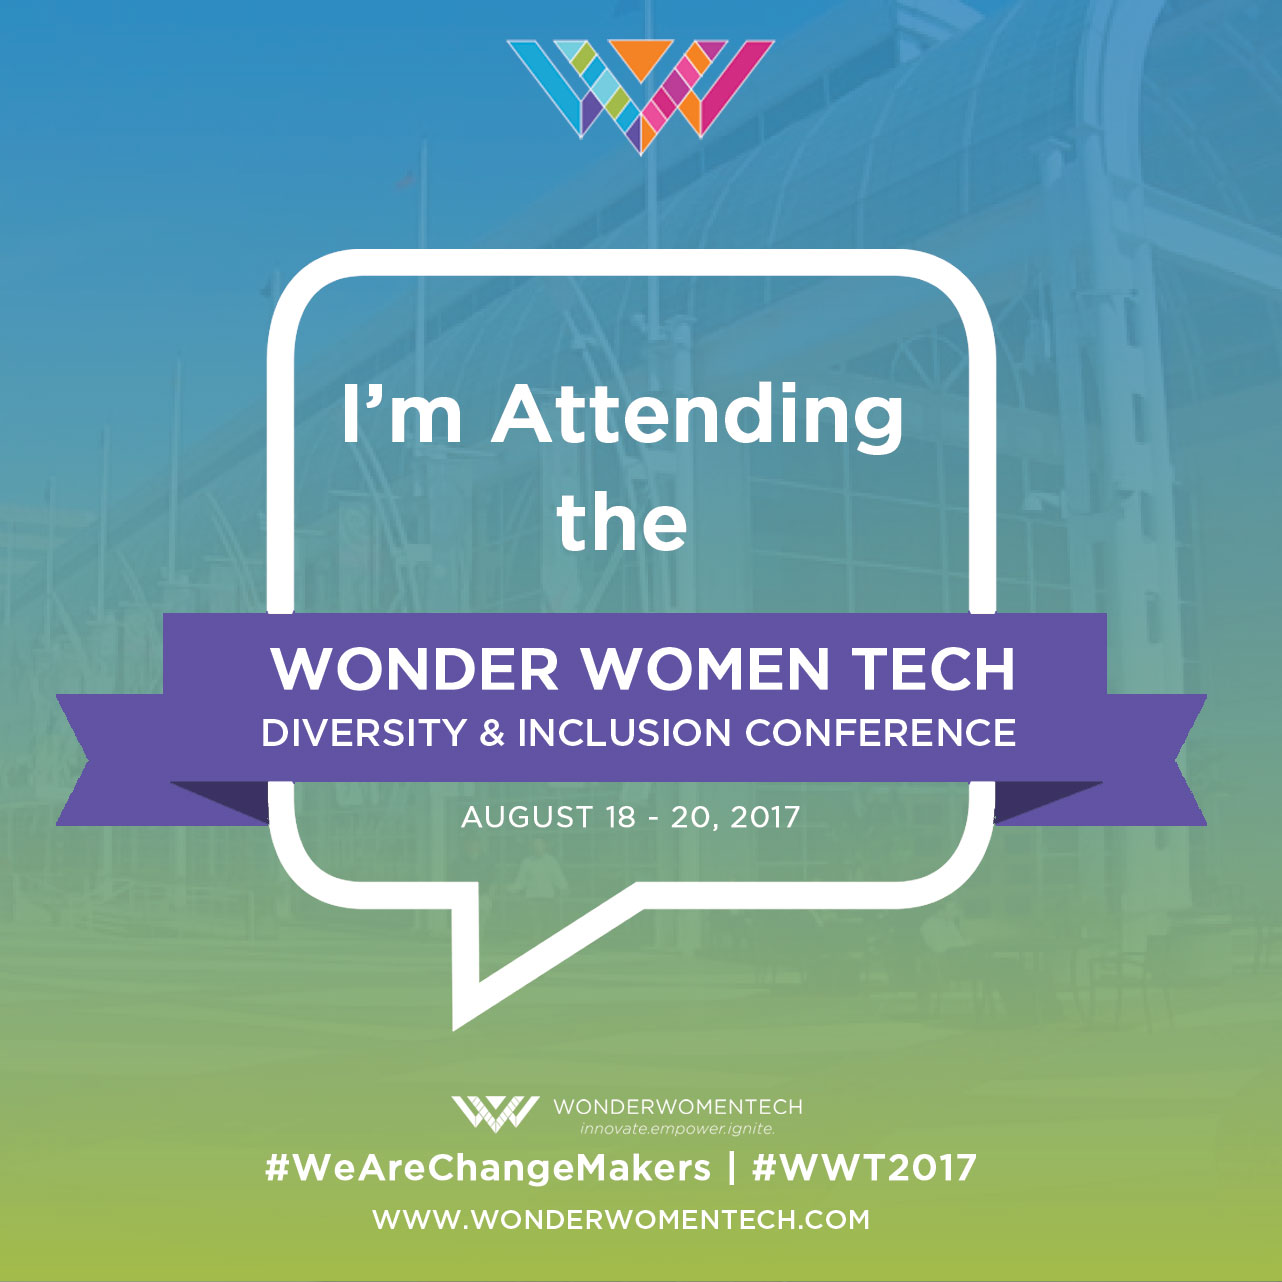 Wonder Women Tech 2017